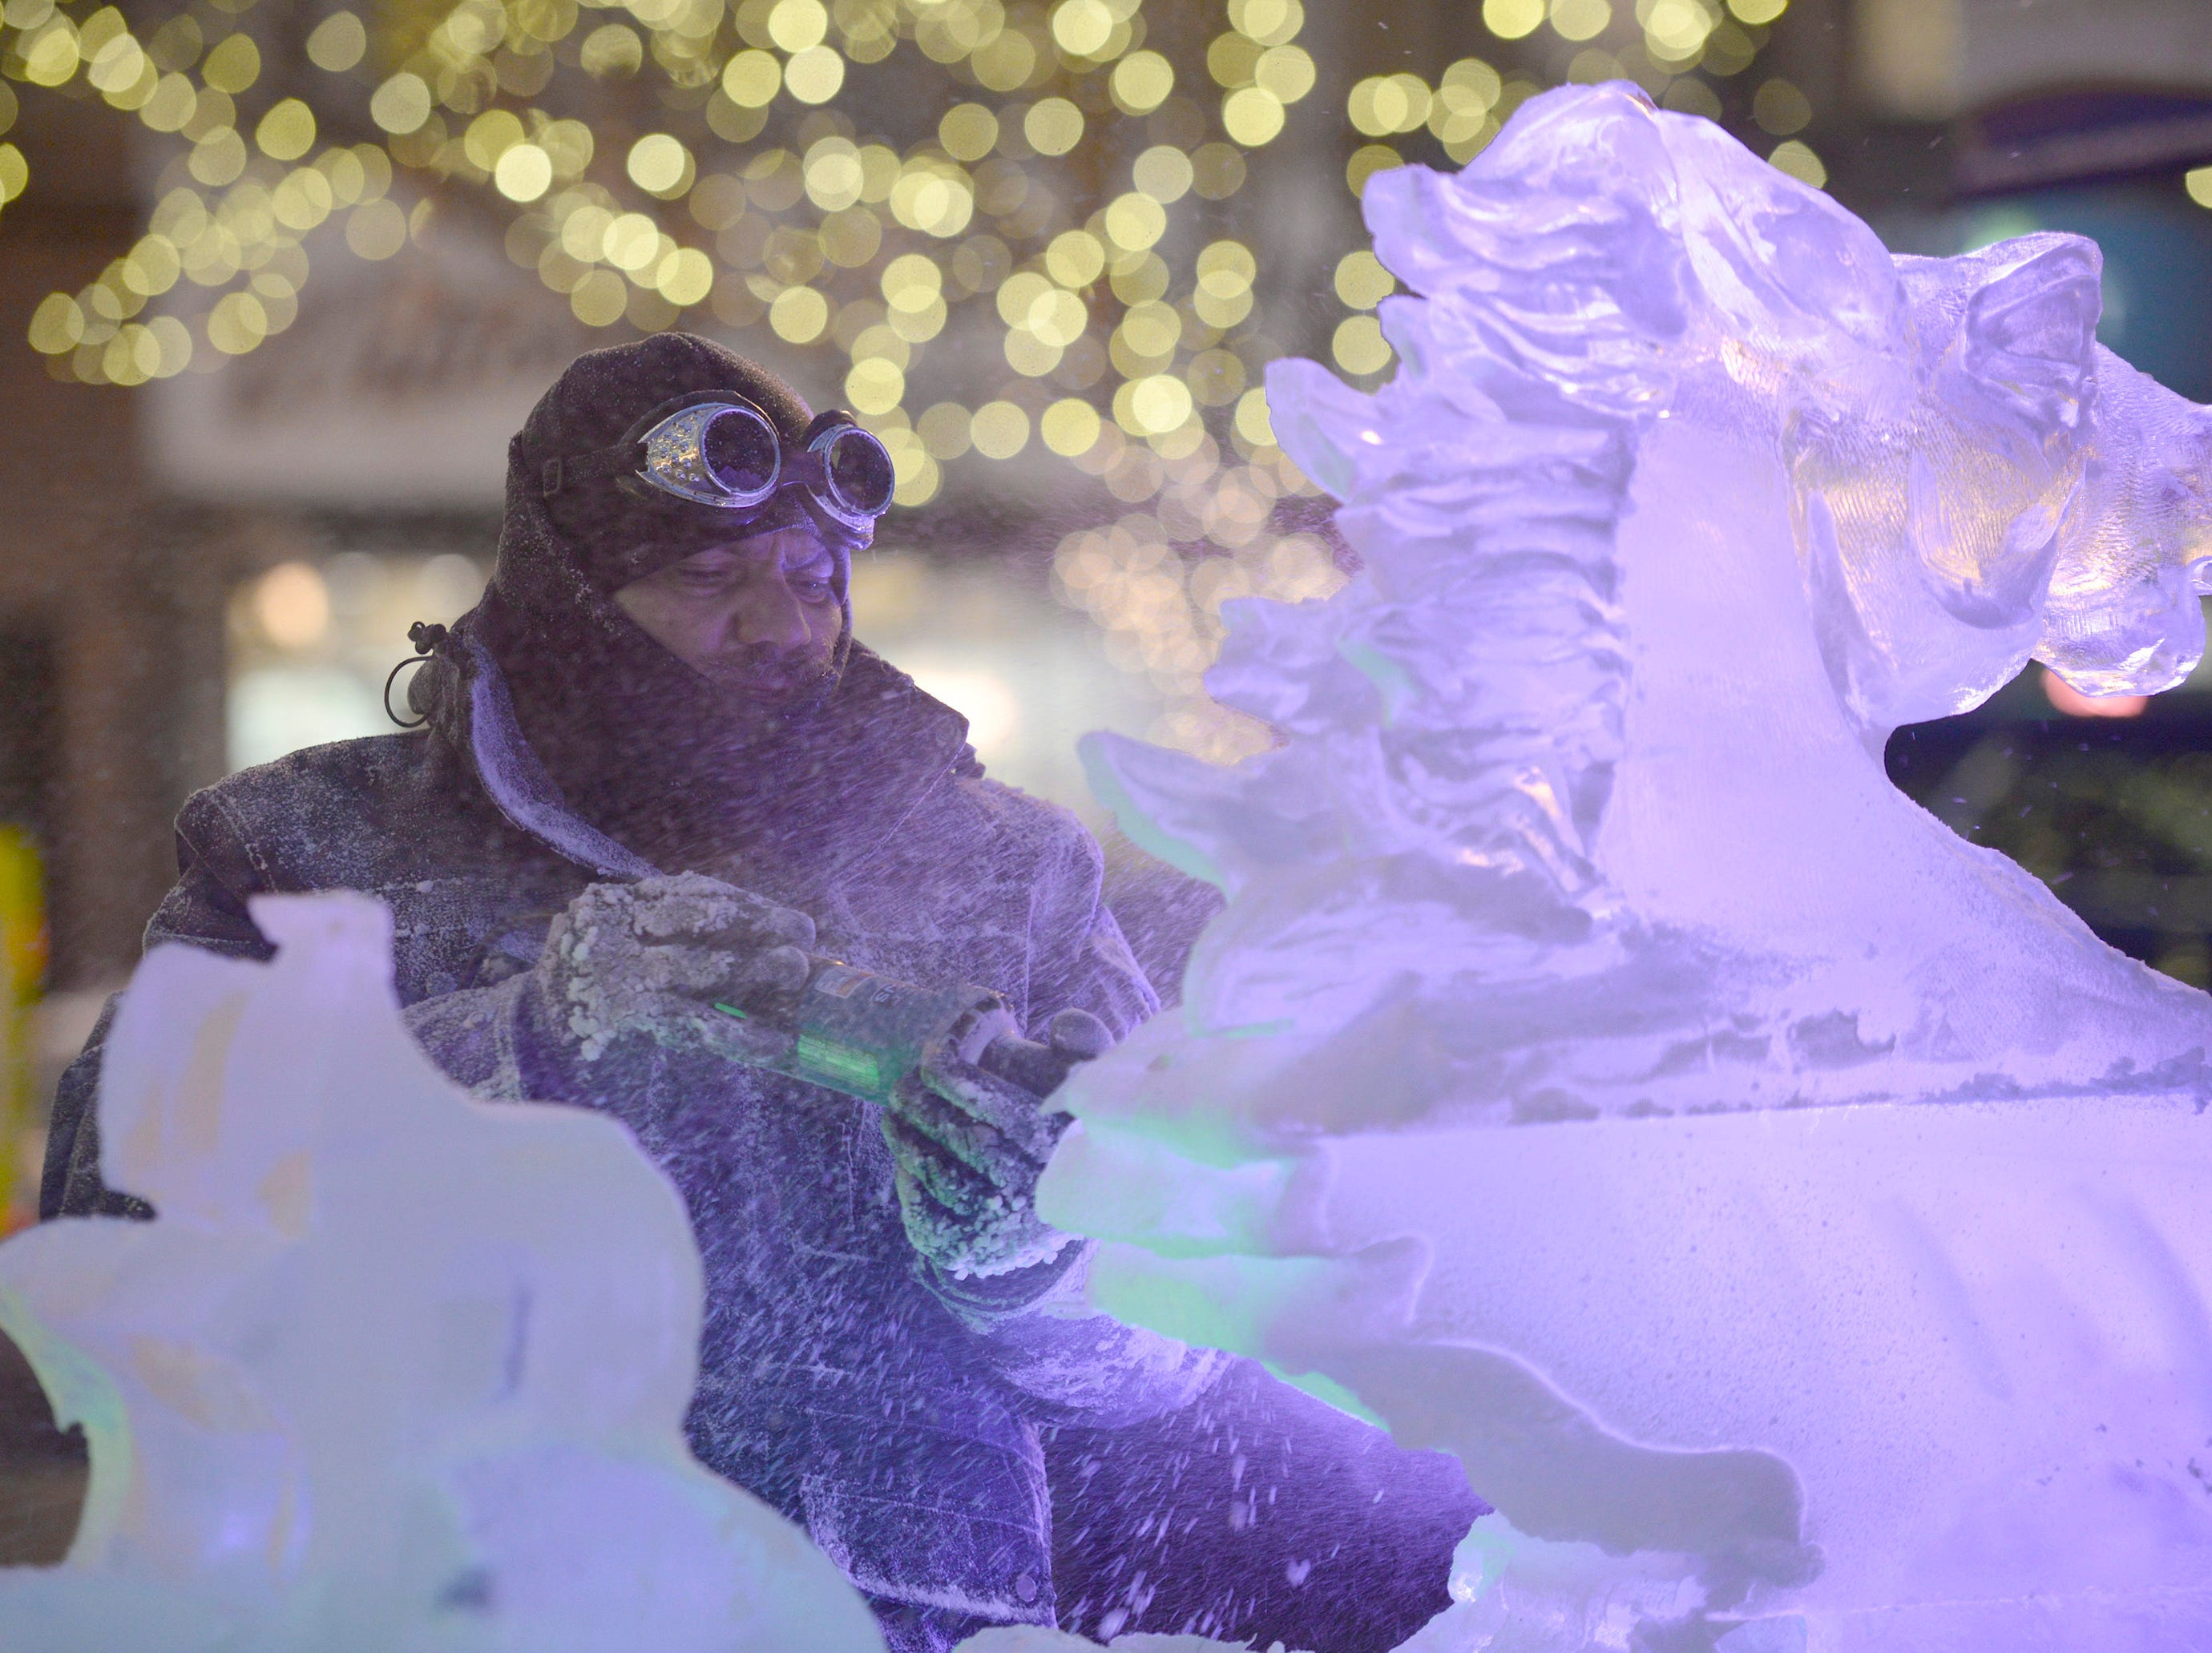 Evening lights illuminate the brilliance of the ice as sculptures start to emerge from blocks of ice at the Plymouth Ice Festival that runs Jan. 11-13. Here Max Zuleta works on a piece that will utilize 14 blocks of ice.